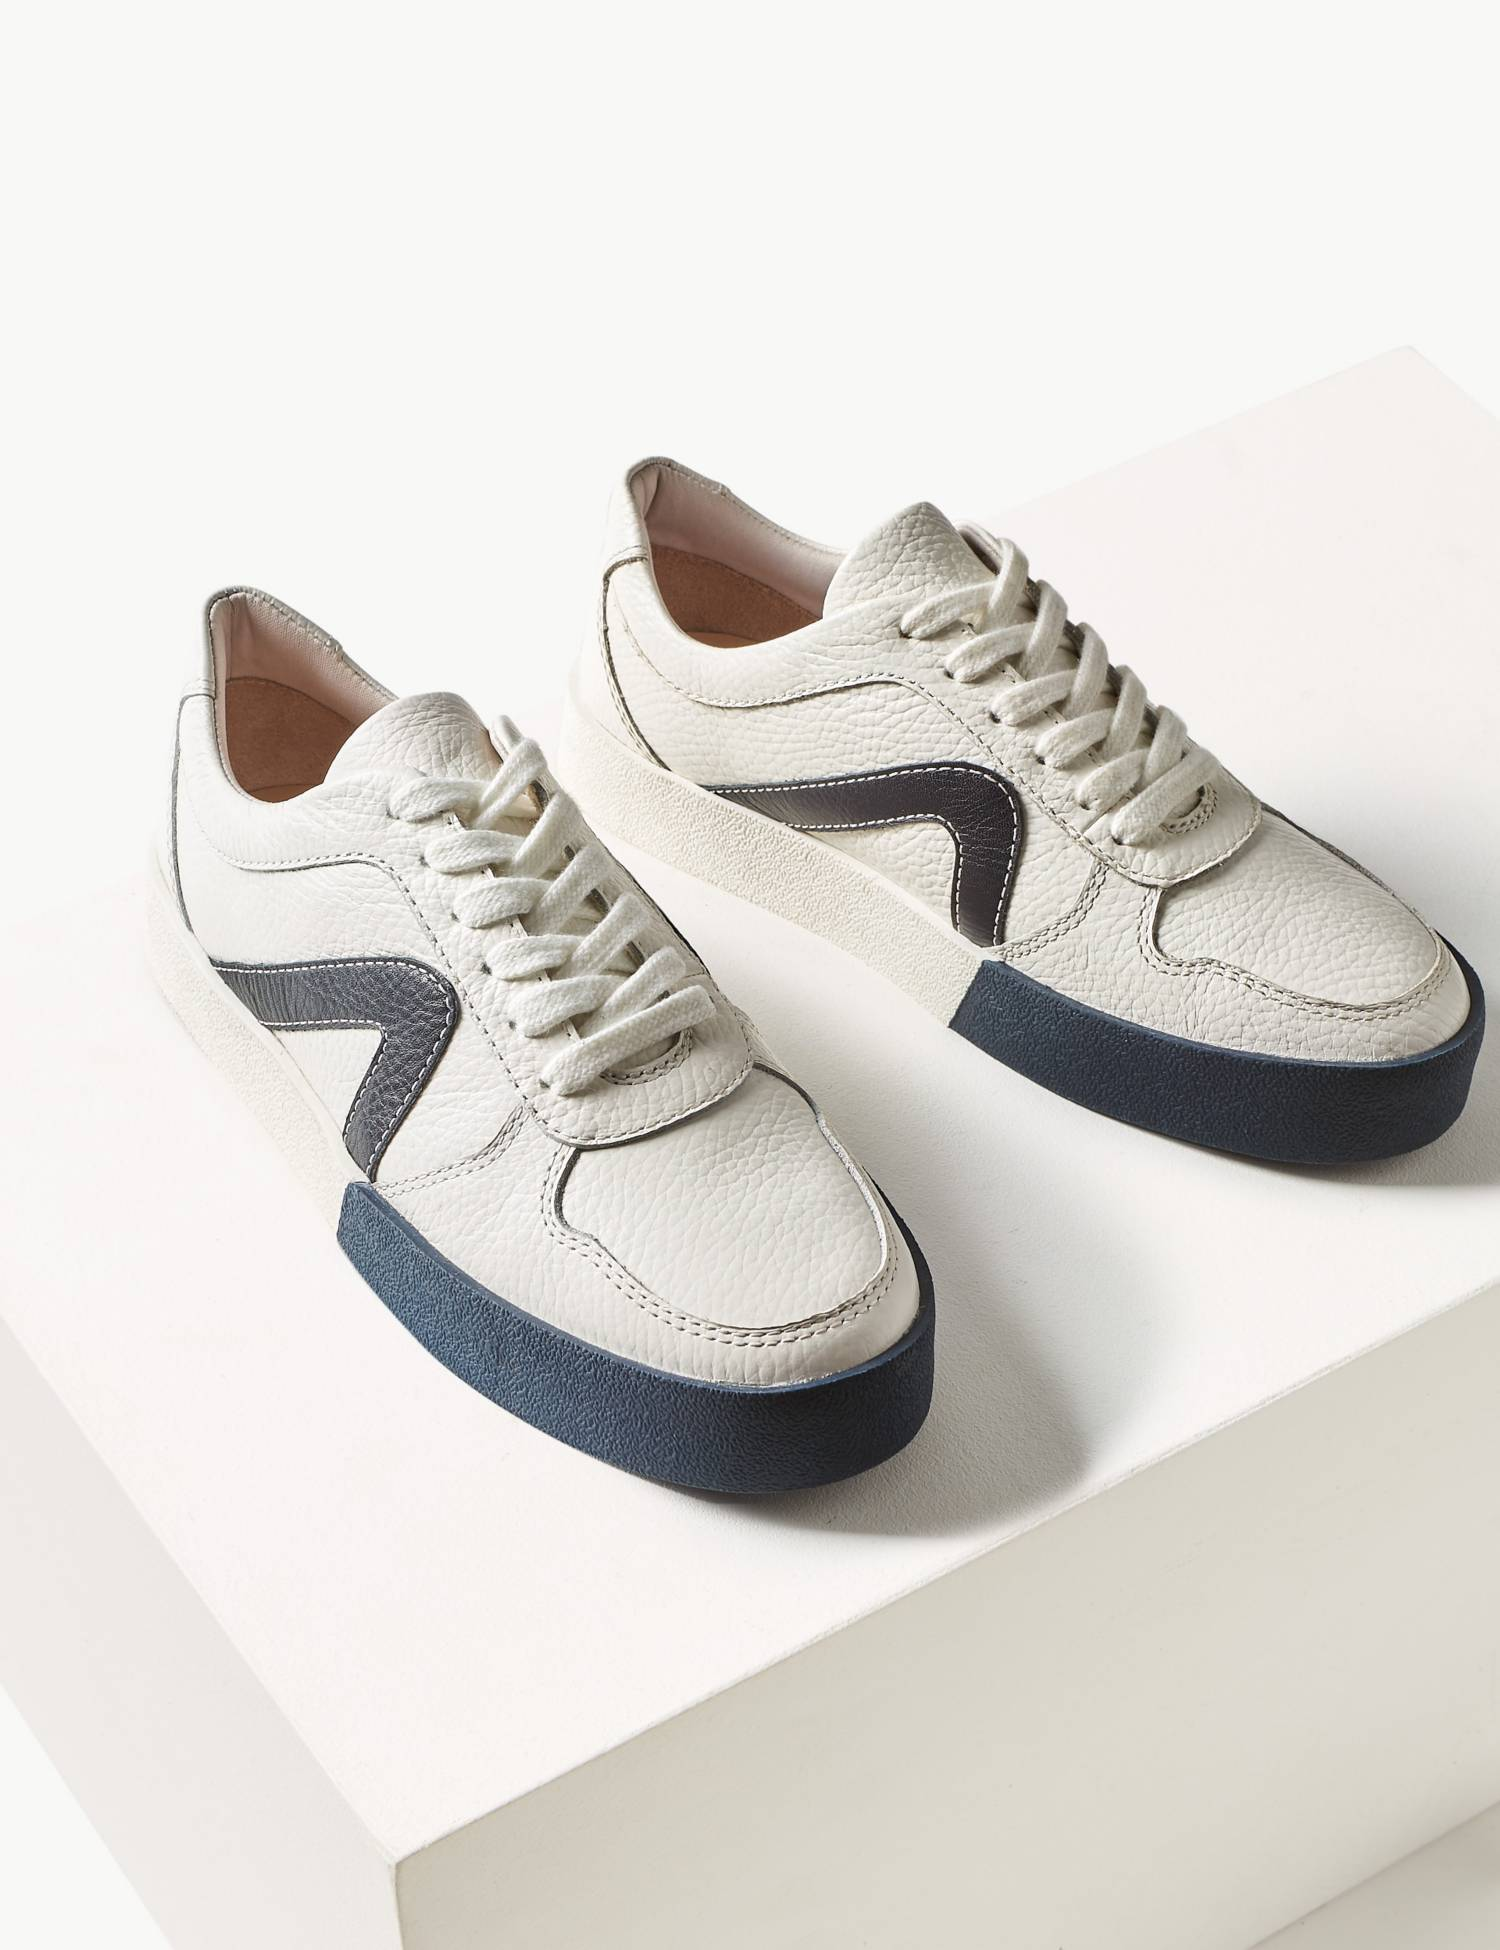 Spencer trainers are a brilliant dupe